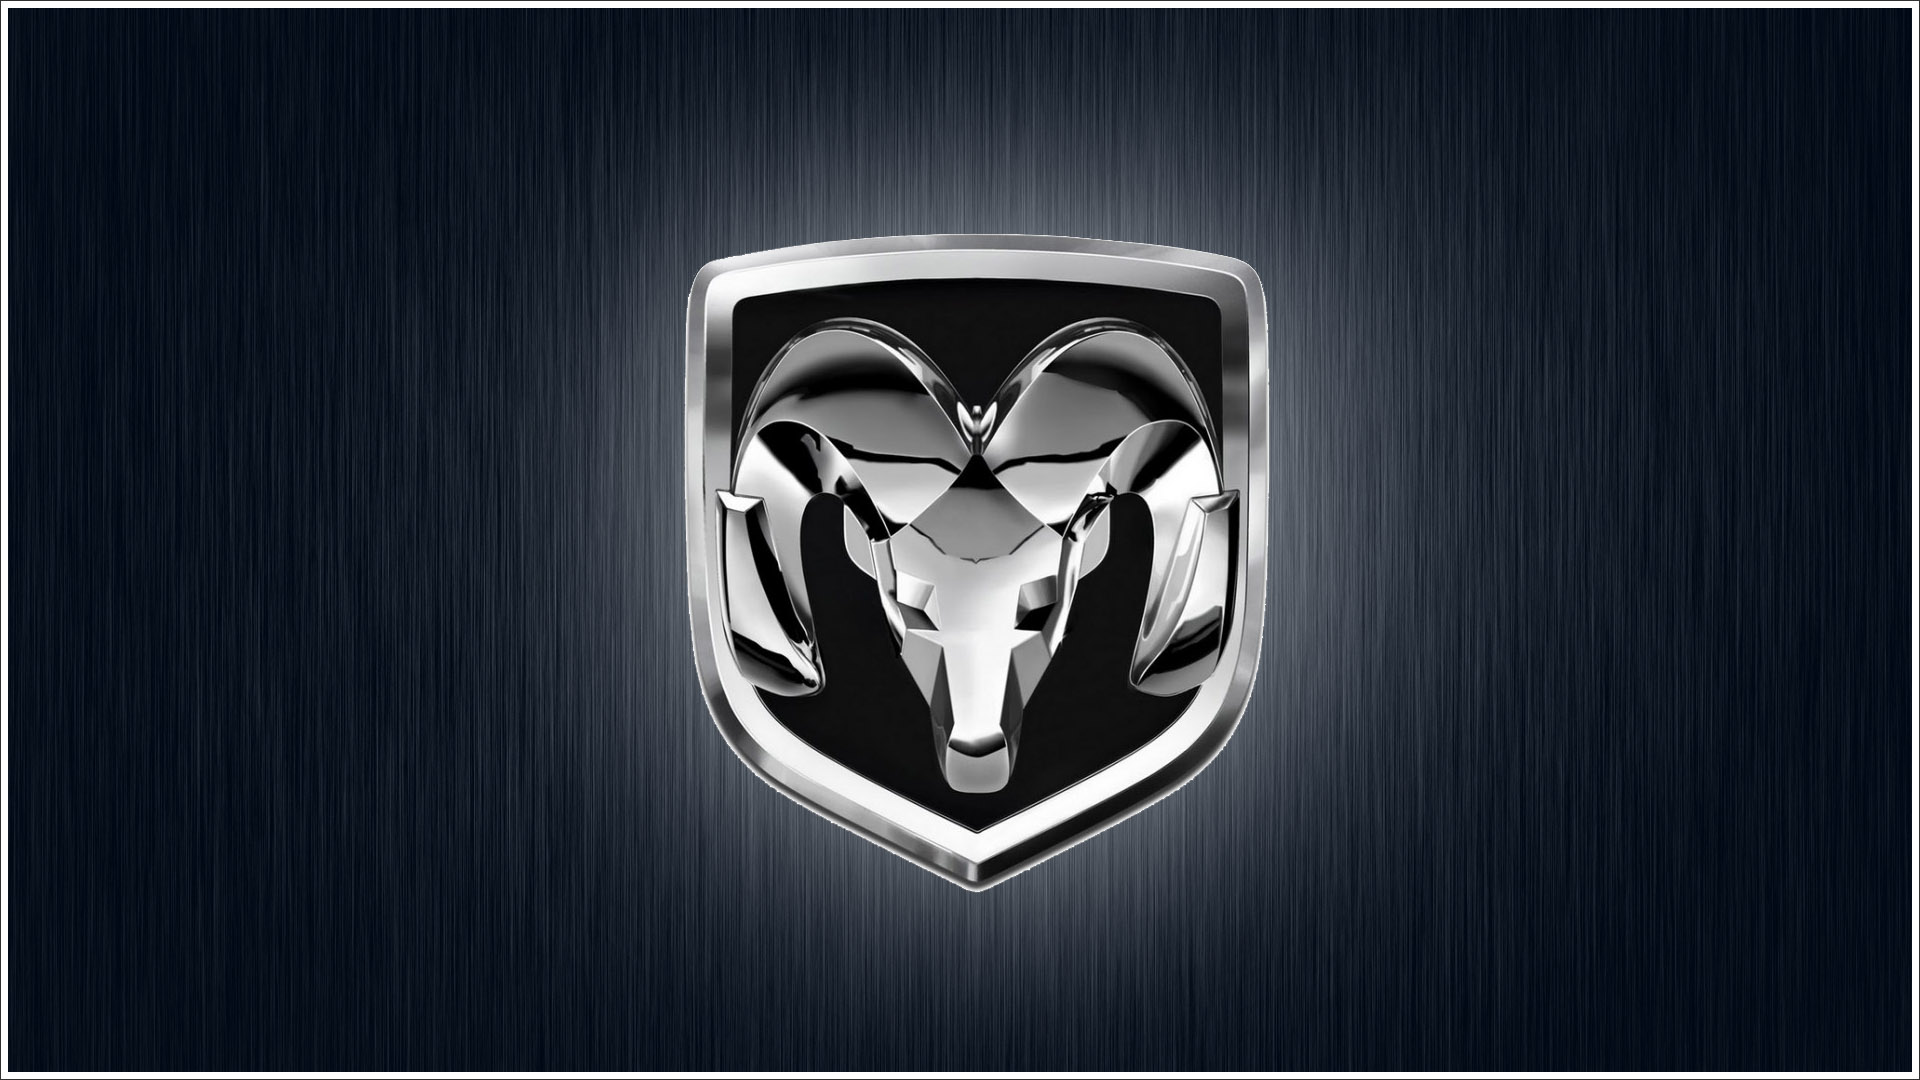 Dodge Latest Models >> Ram Truck Logo - WeSharePics